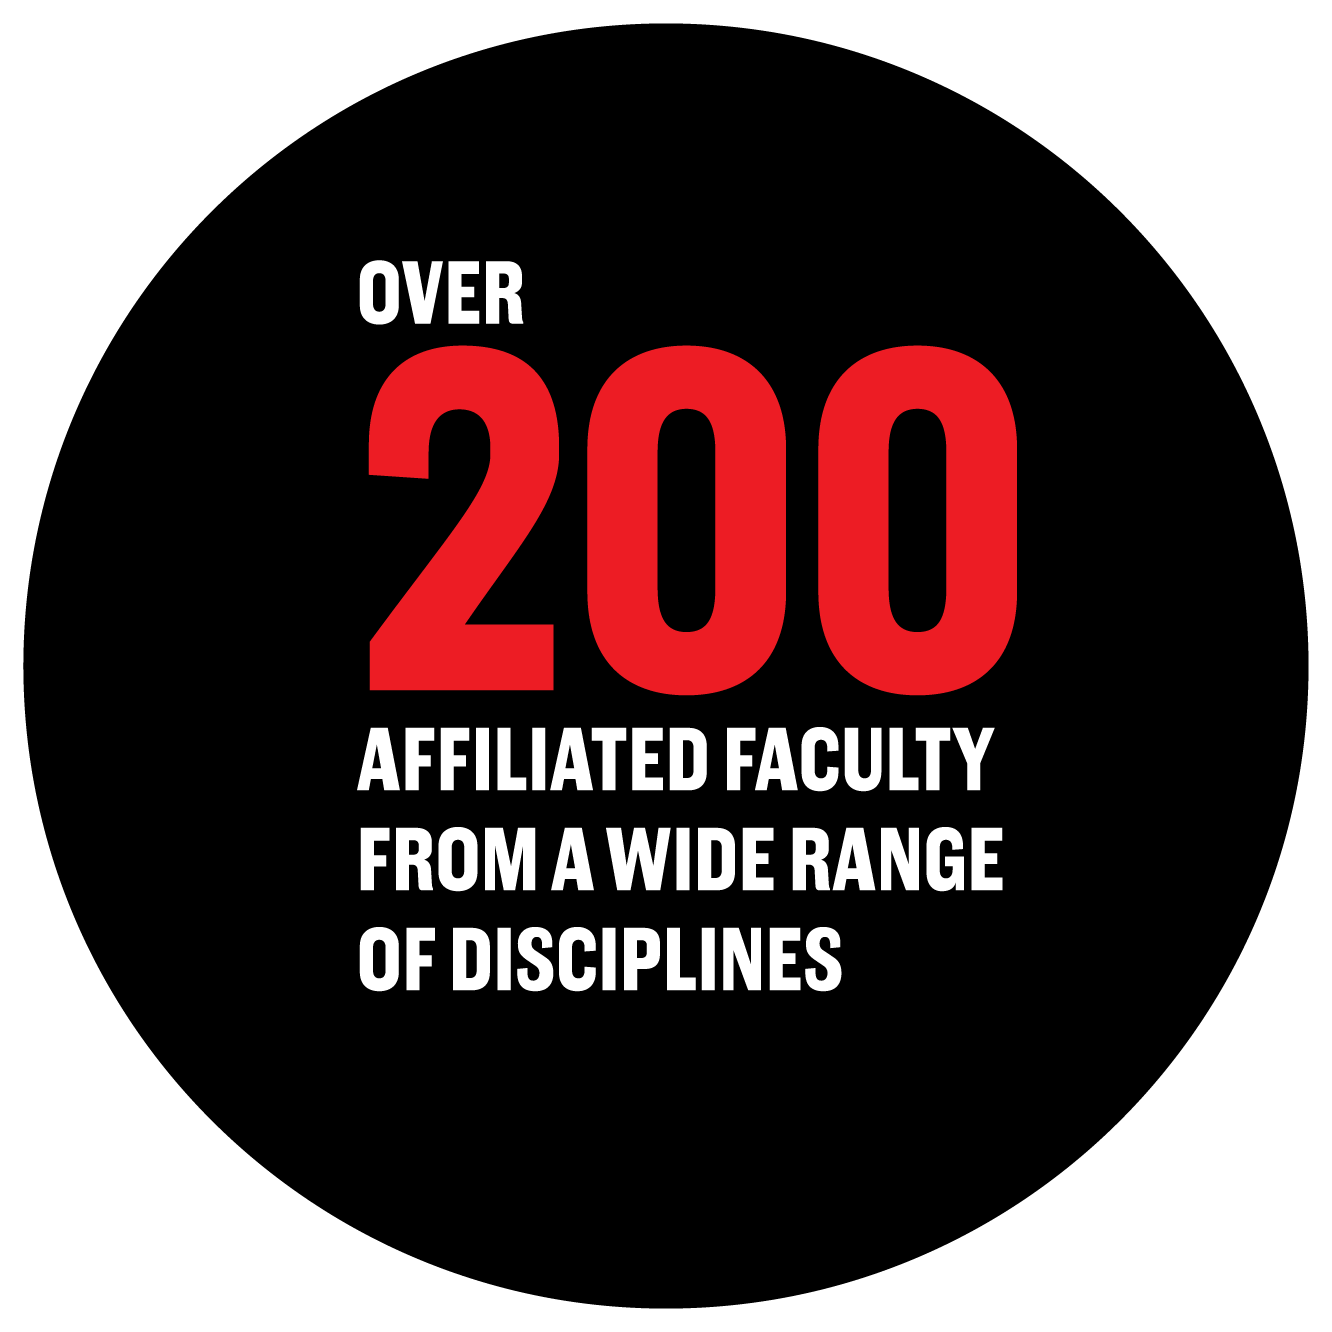 Over 200 affiliated faculty from a wide range of disciplines.